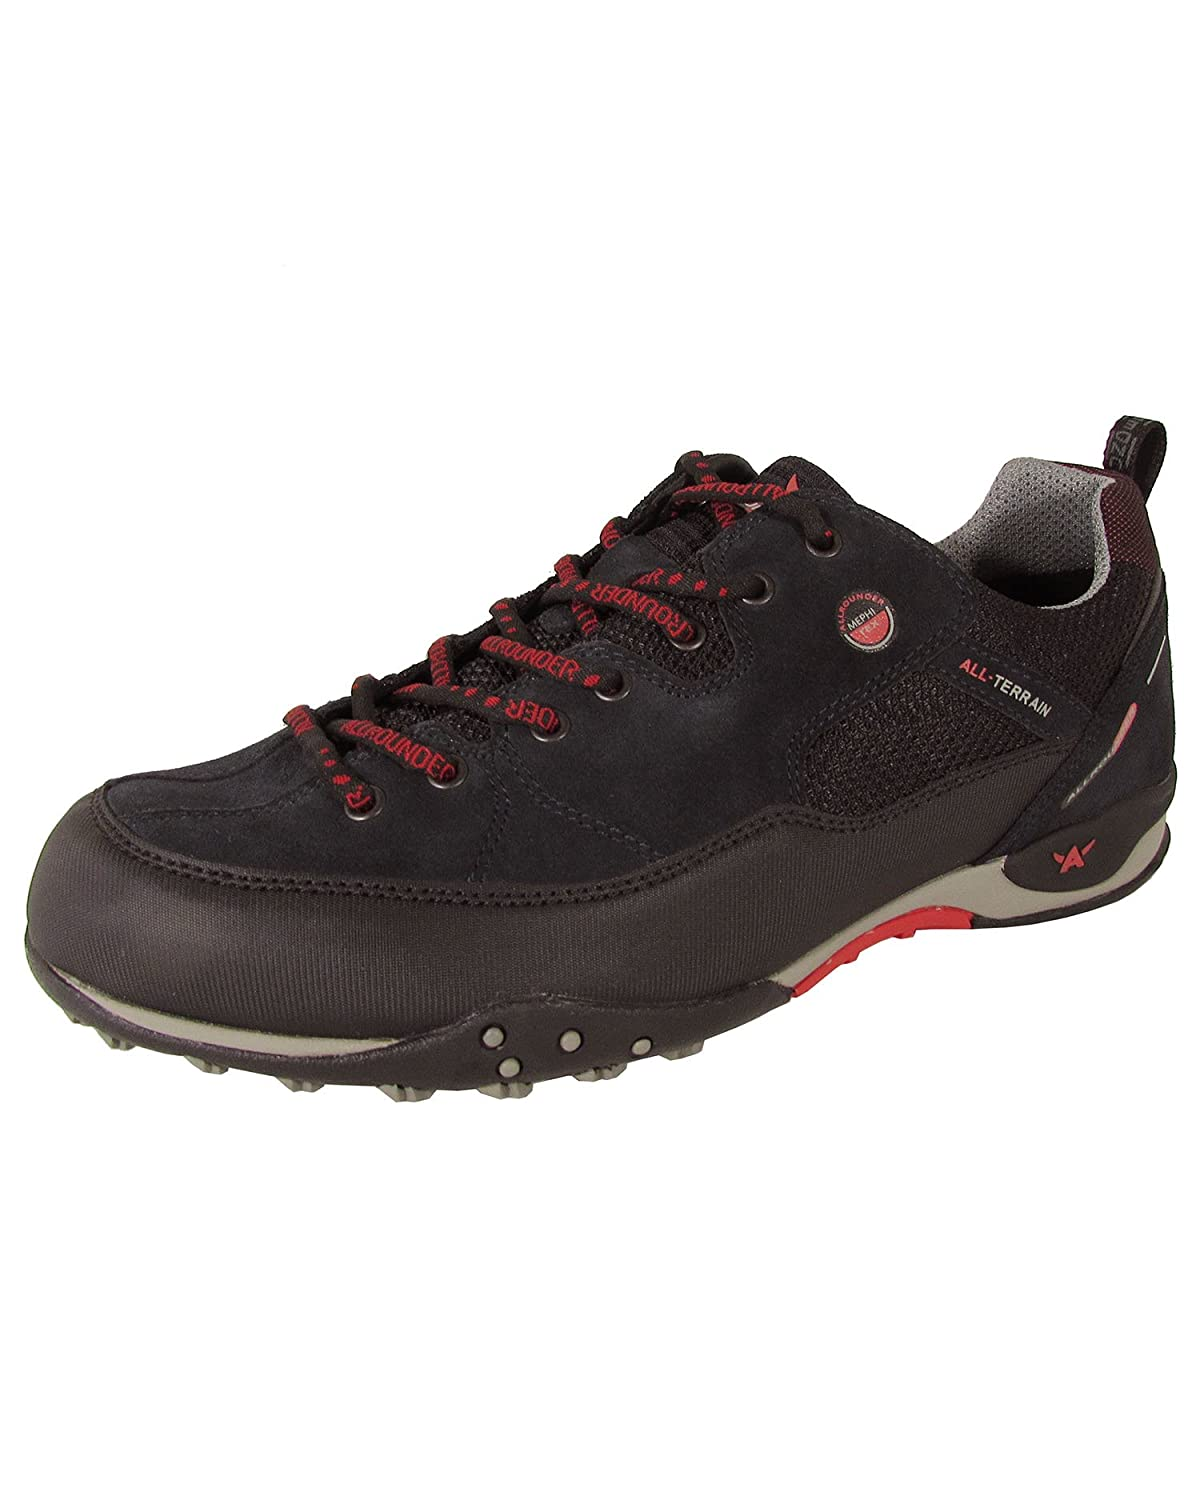 Allrounder by Mephisto Mens Tacco Tex Black Rubber/Dark Stone Suede